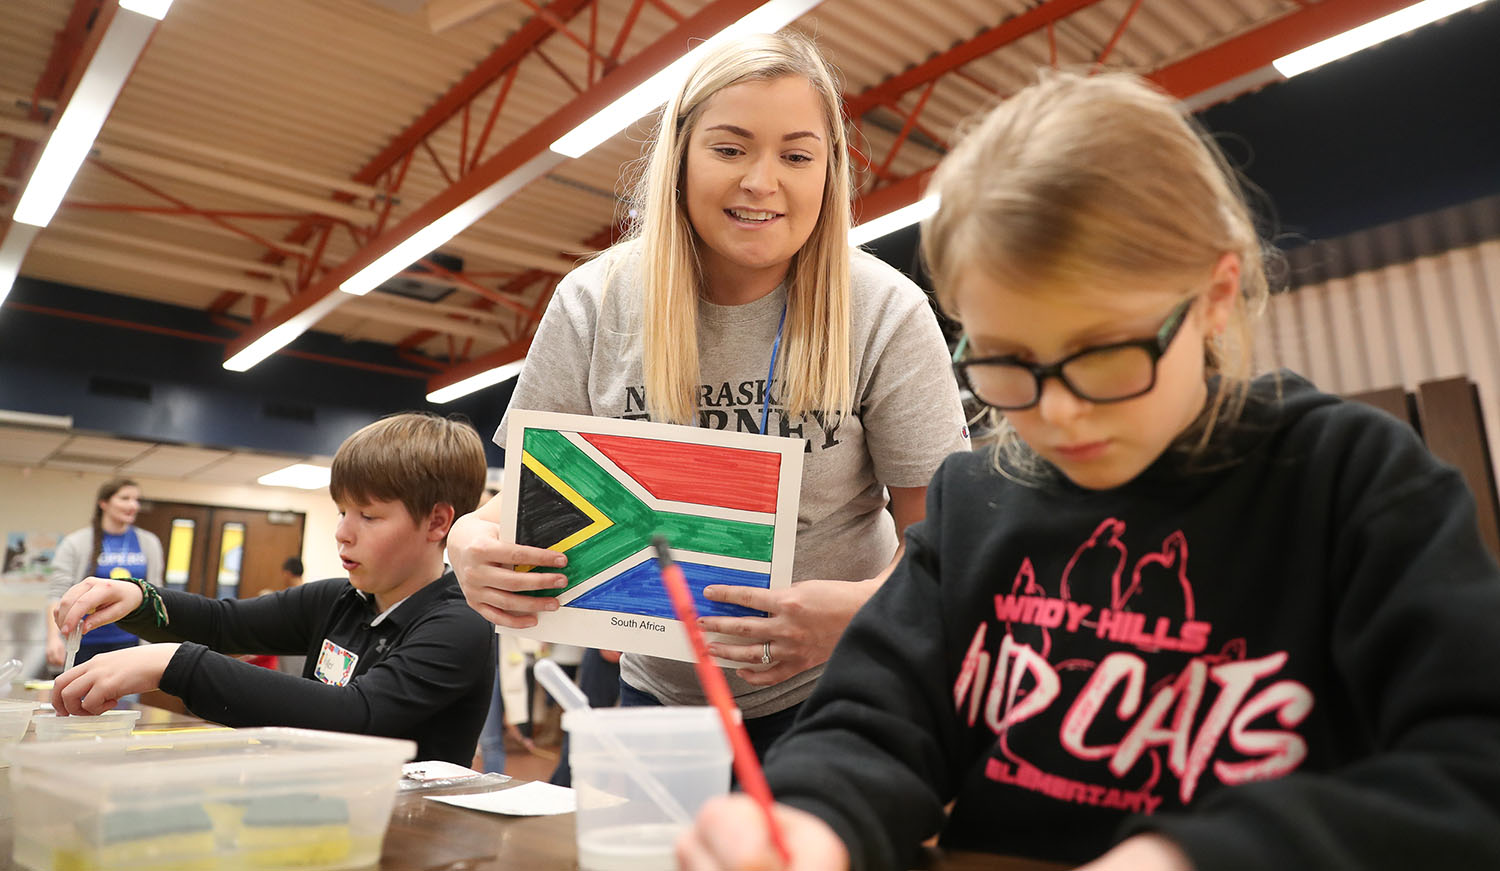 UNK student Samantha Svoboda, middle, leads an activity Friday during the Measurement Olympics at Windy Hills Elementary School in Kearney. (Photos by Corbey R. Dorsey, UNK Communications)